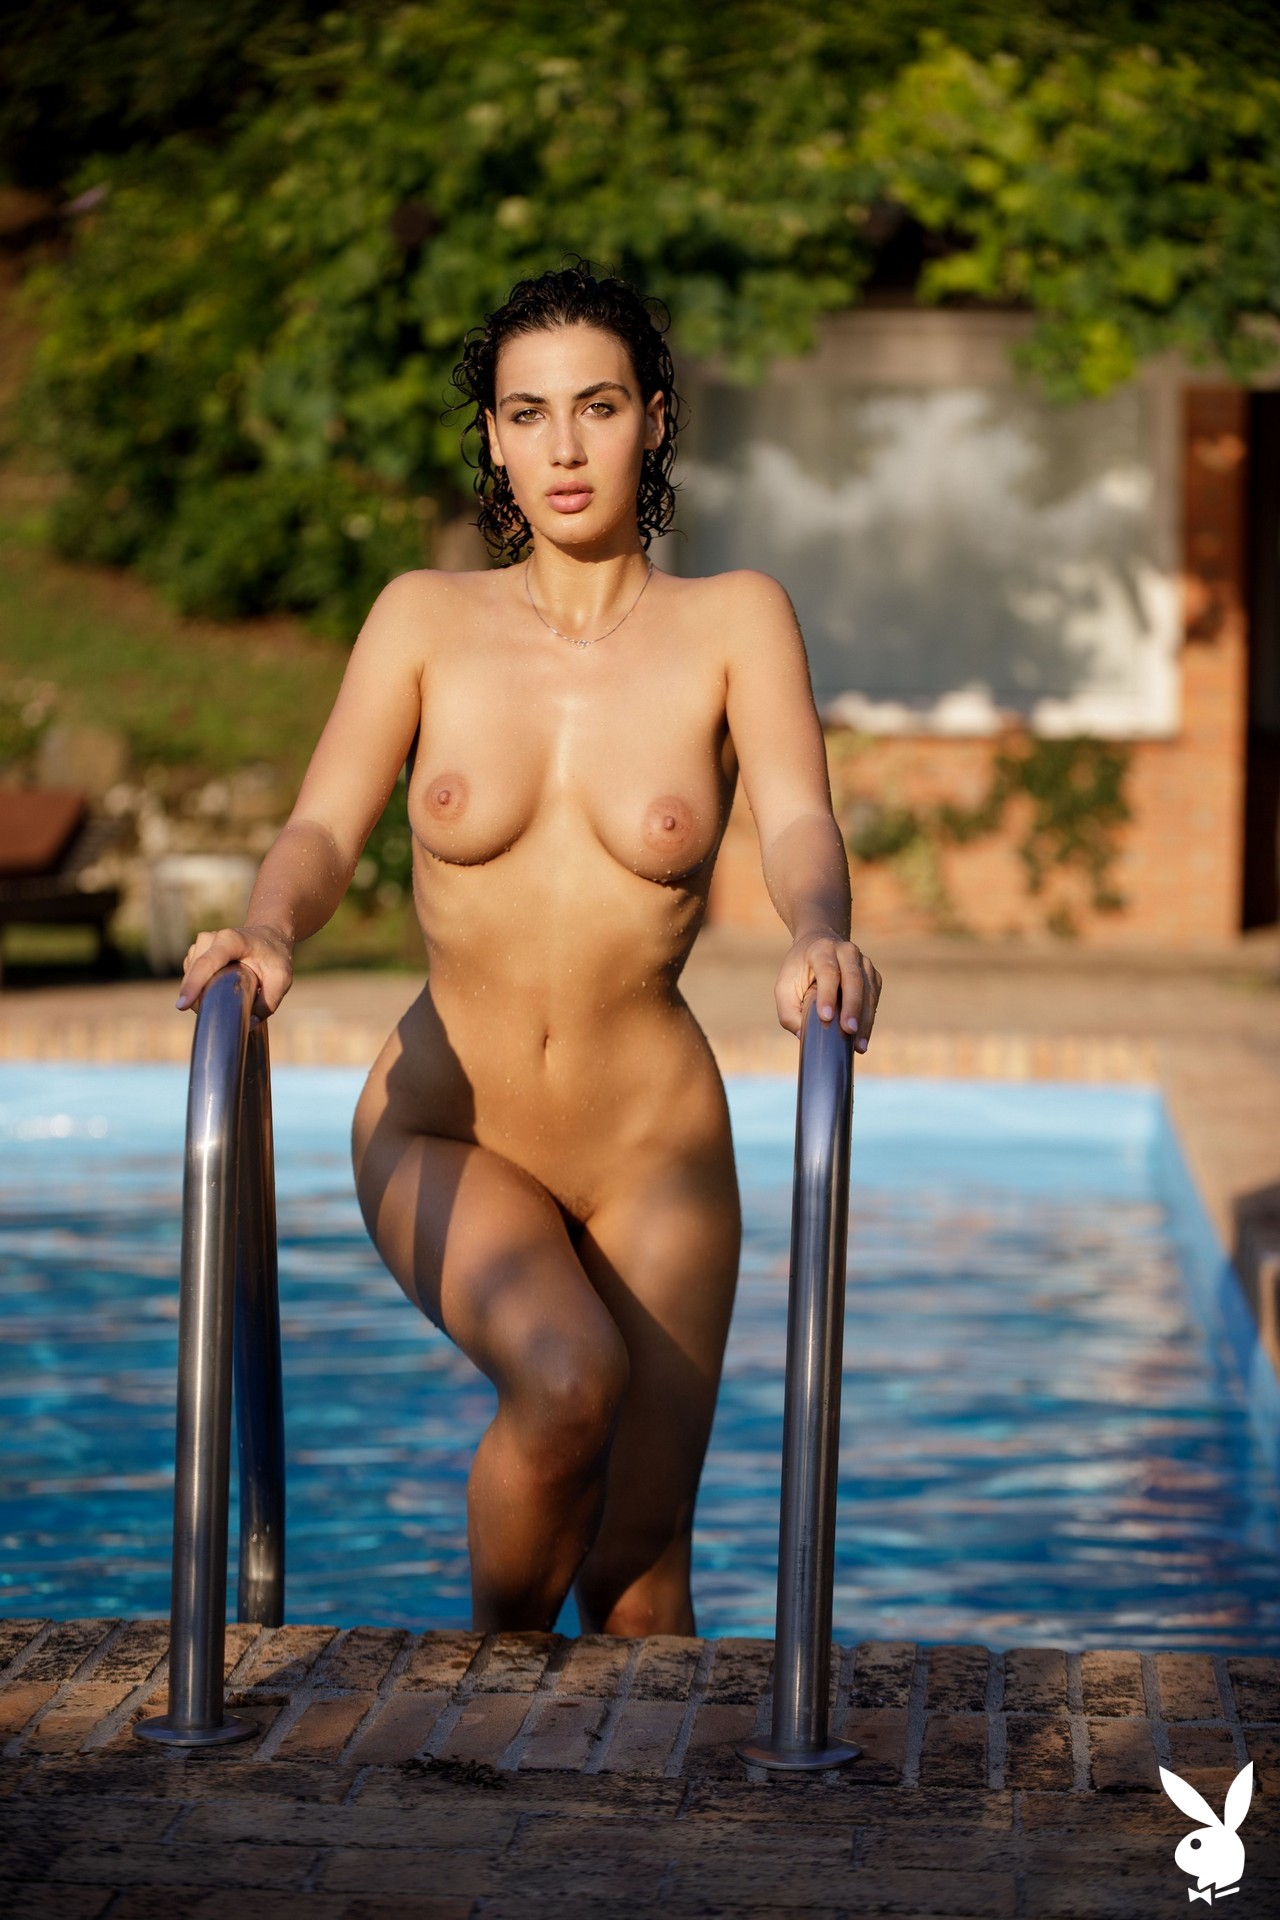 Gena Miller In Immerse Yourself Playboy Plus (24)